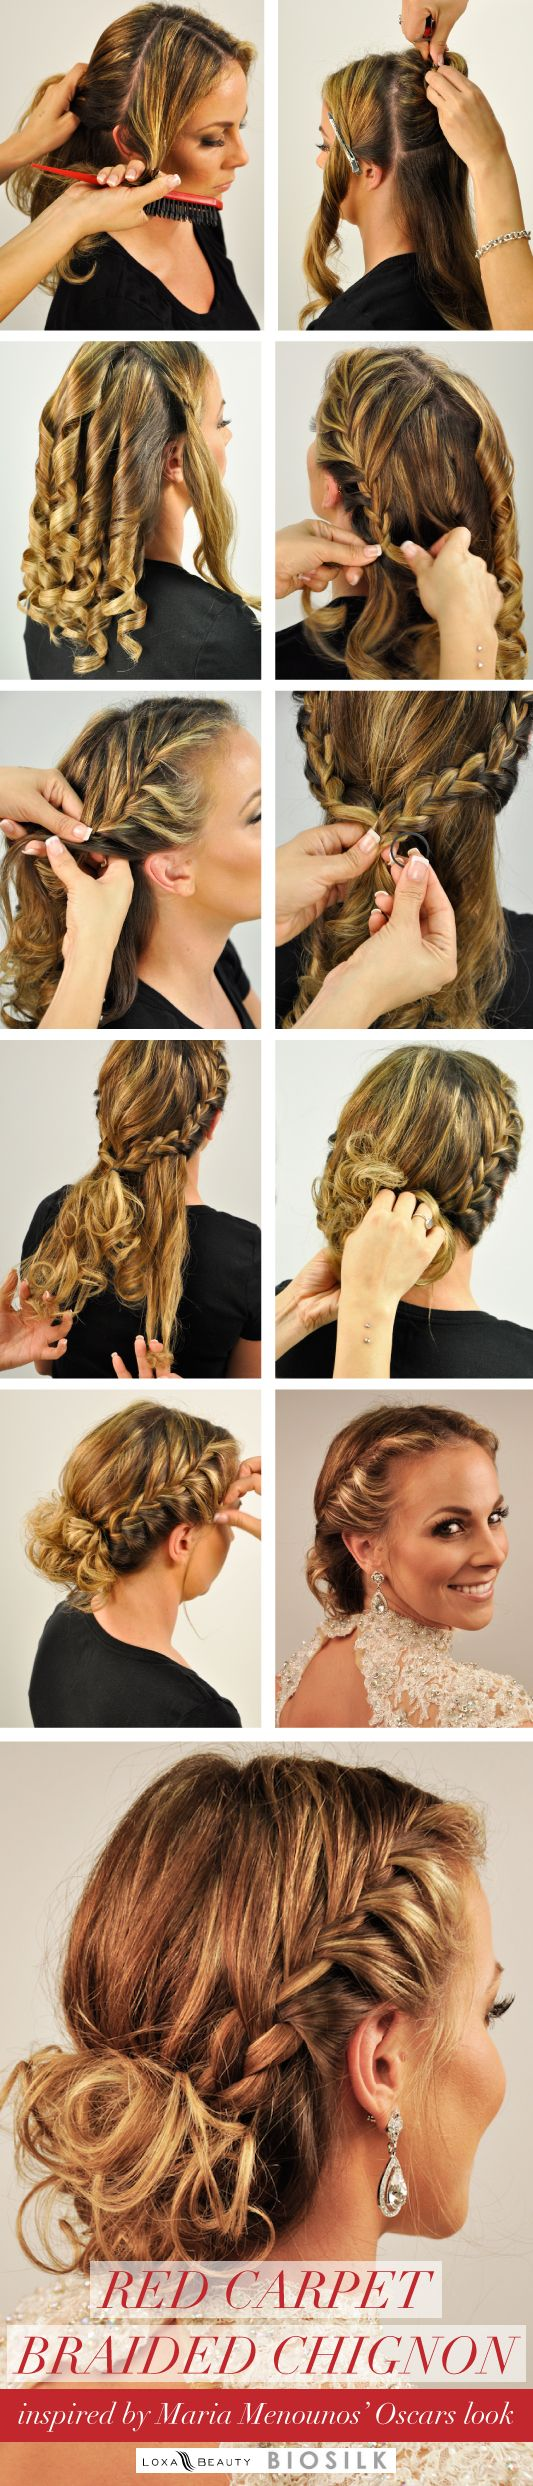 How-to: glamorous braided updo